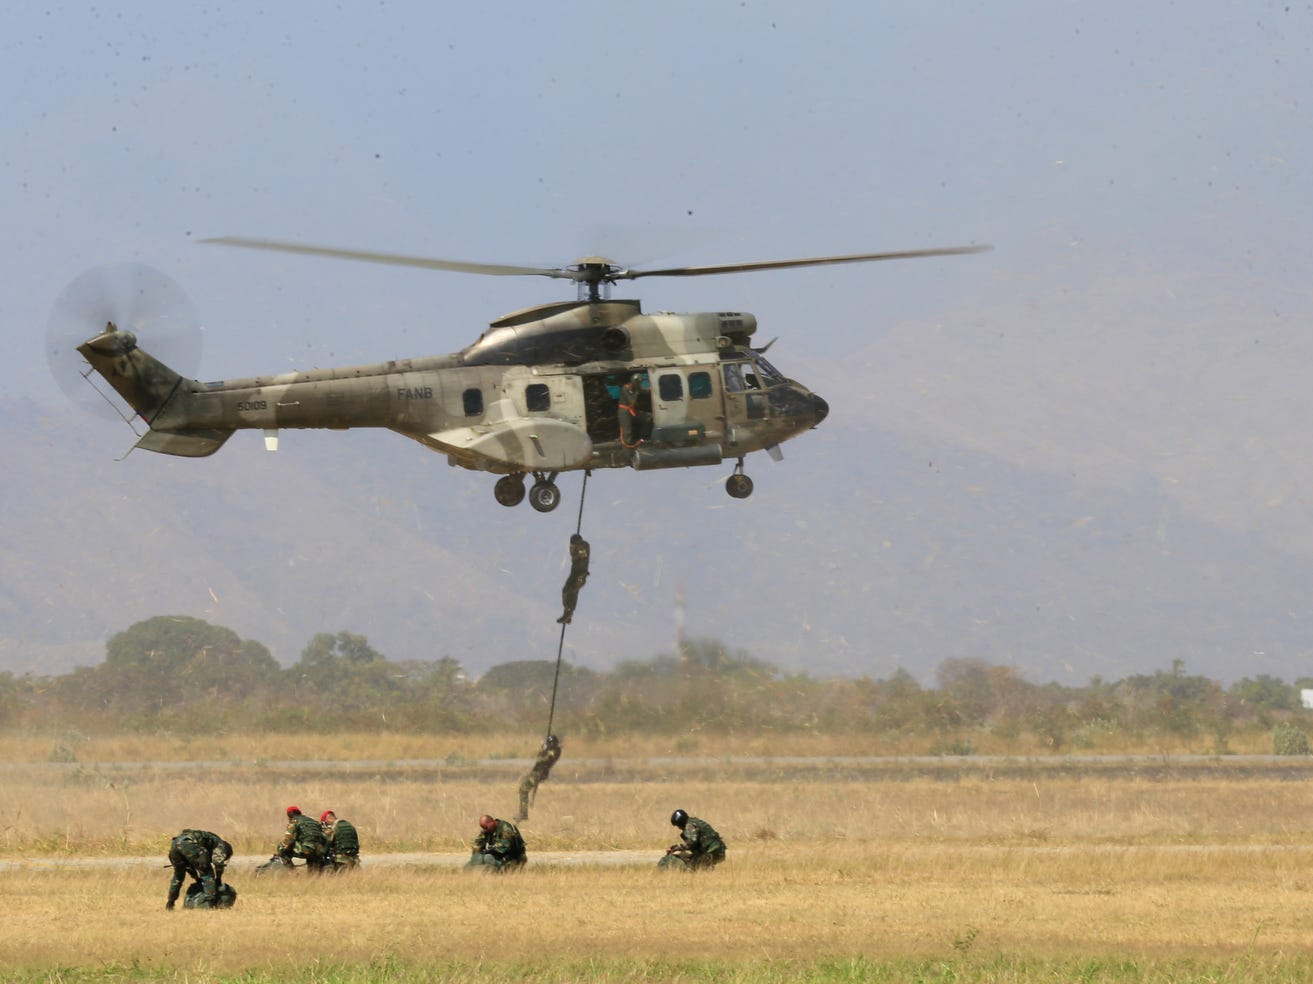 A French-made Super Cougar helicopter takes part in military exercises at the Libertador Air Base in Maracay, Aragua state, Venezuela, on Tuesday, Jan. 29, 2019.